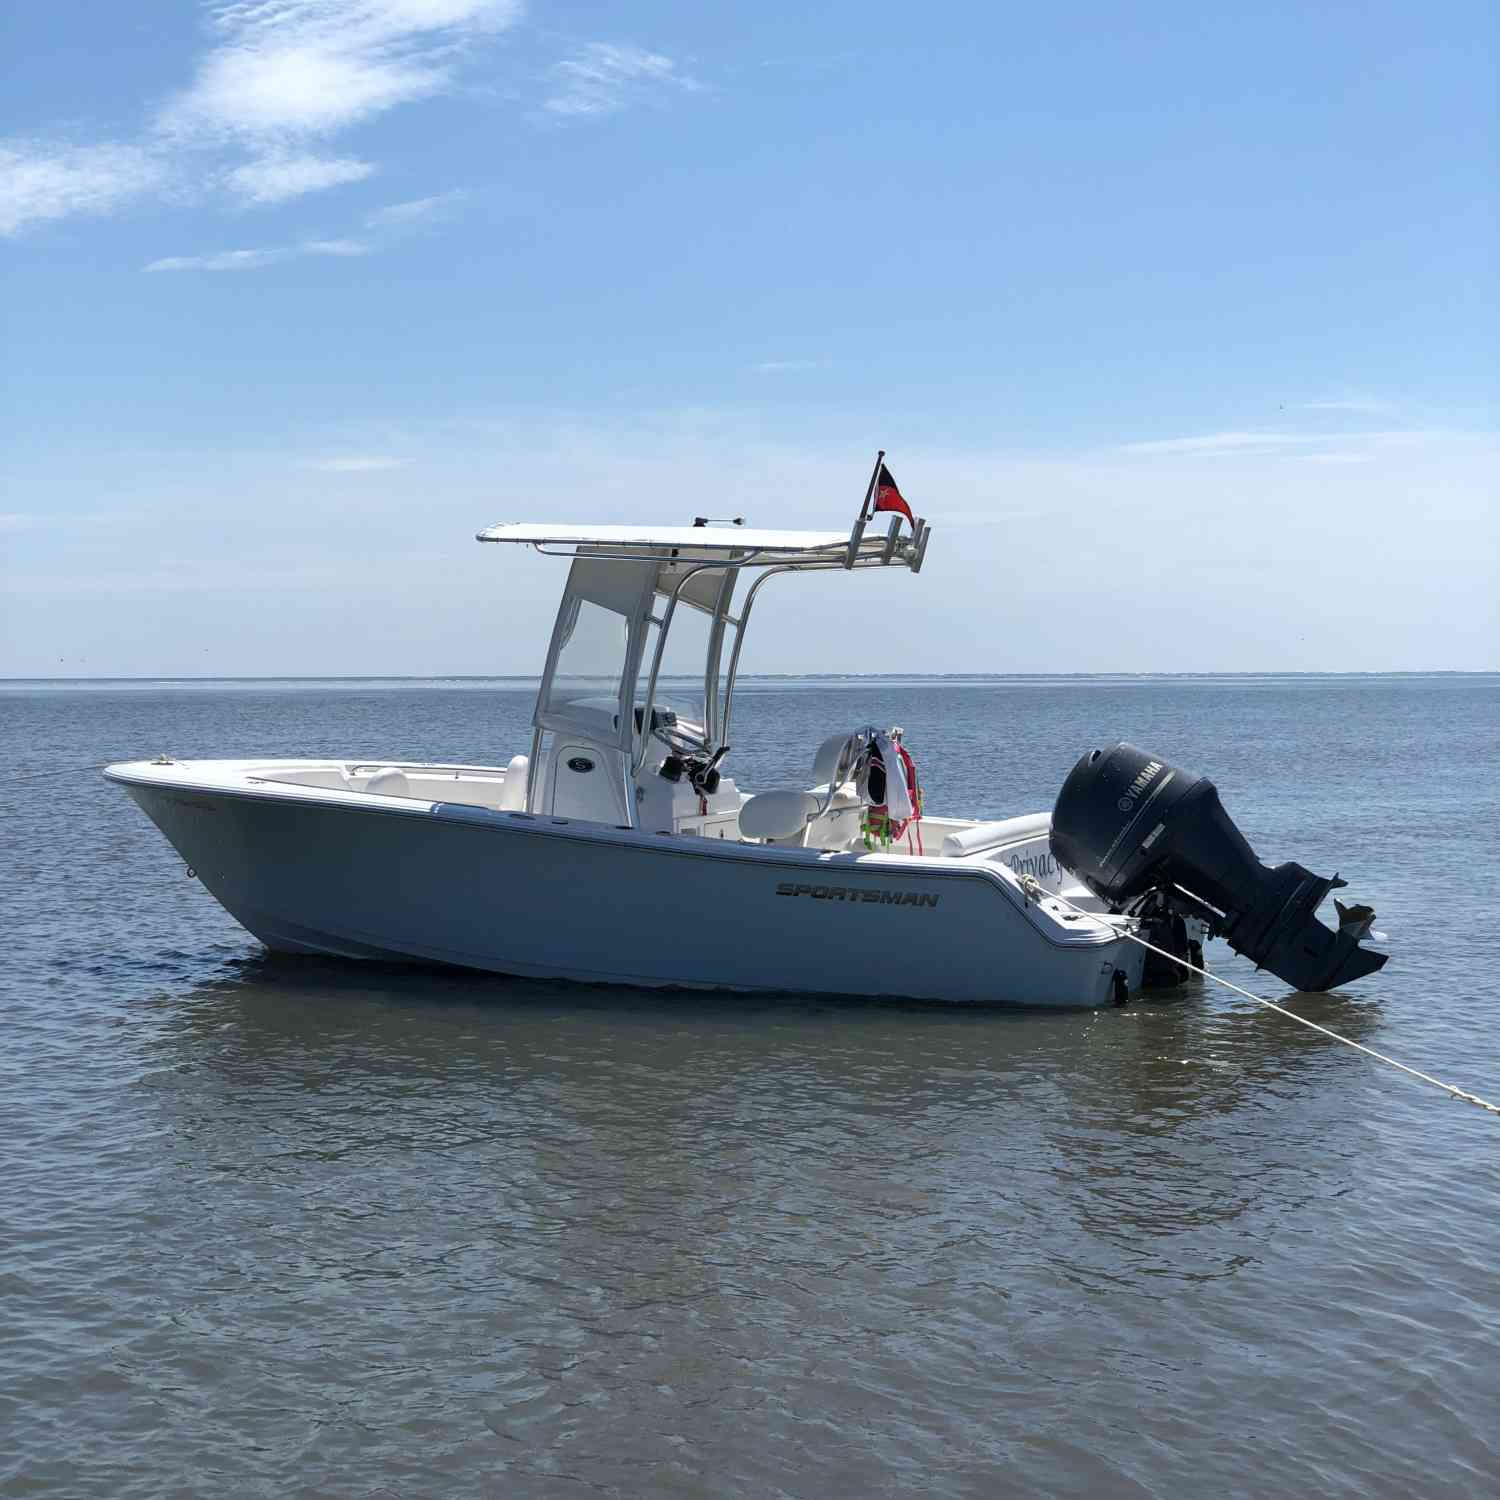 Title: Beach day - On board their Sportsman Heritage 211 Center Console - Location: Charleston,SC. Participating in the Photo Contest #SportsmanSeptember2018